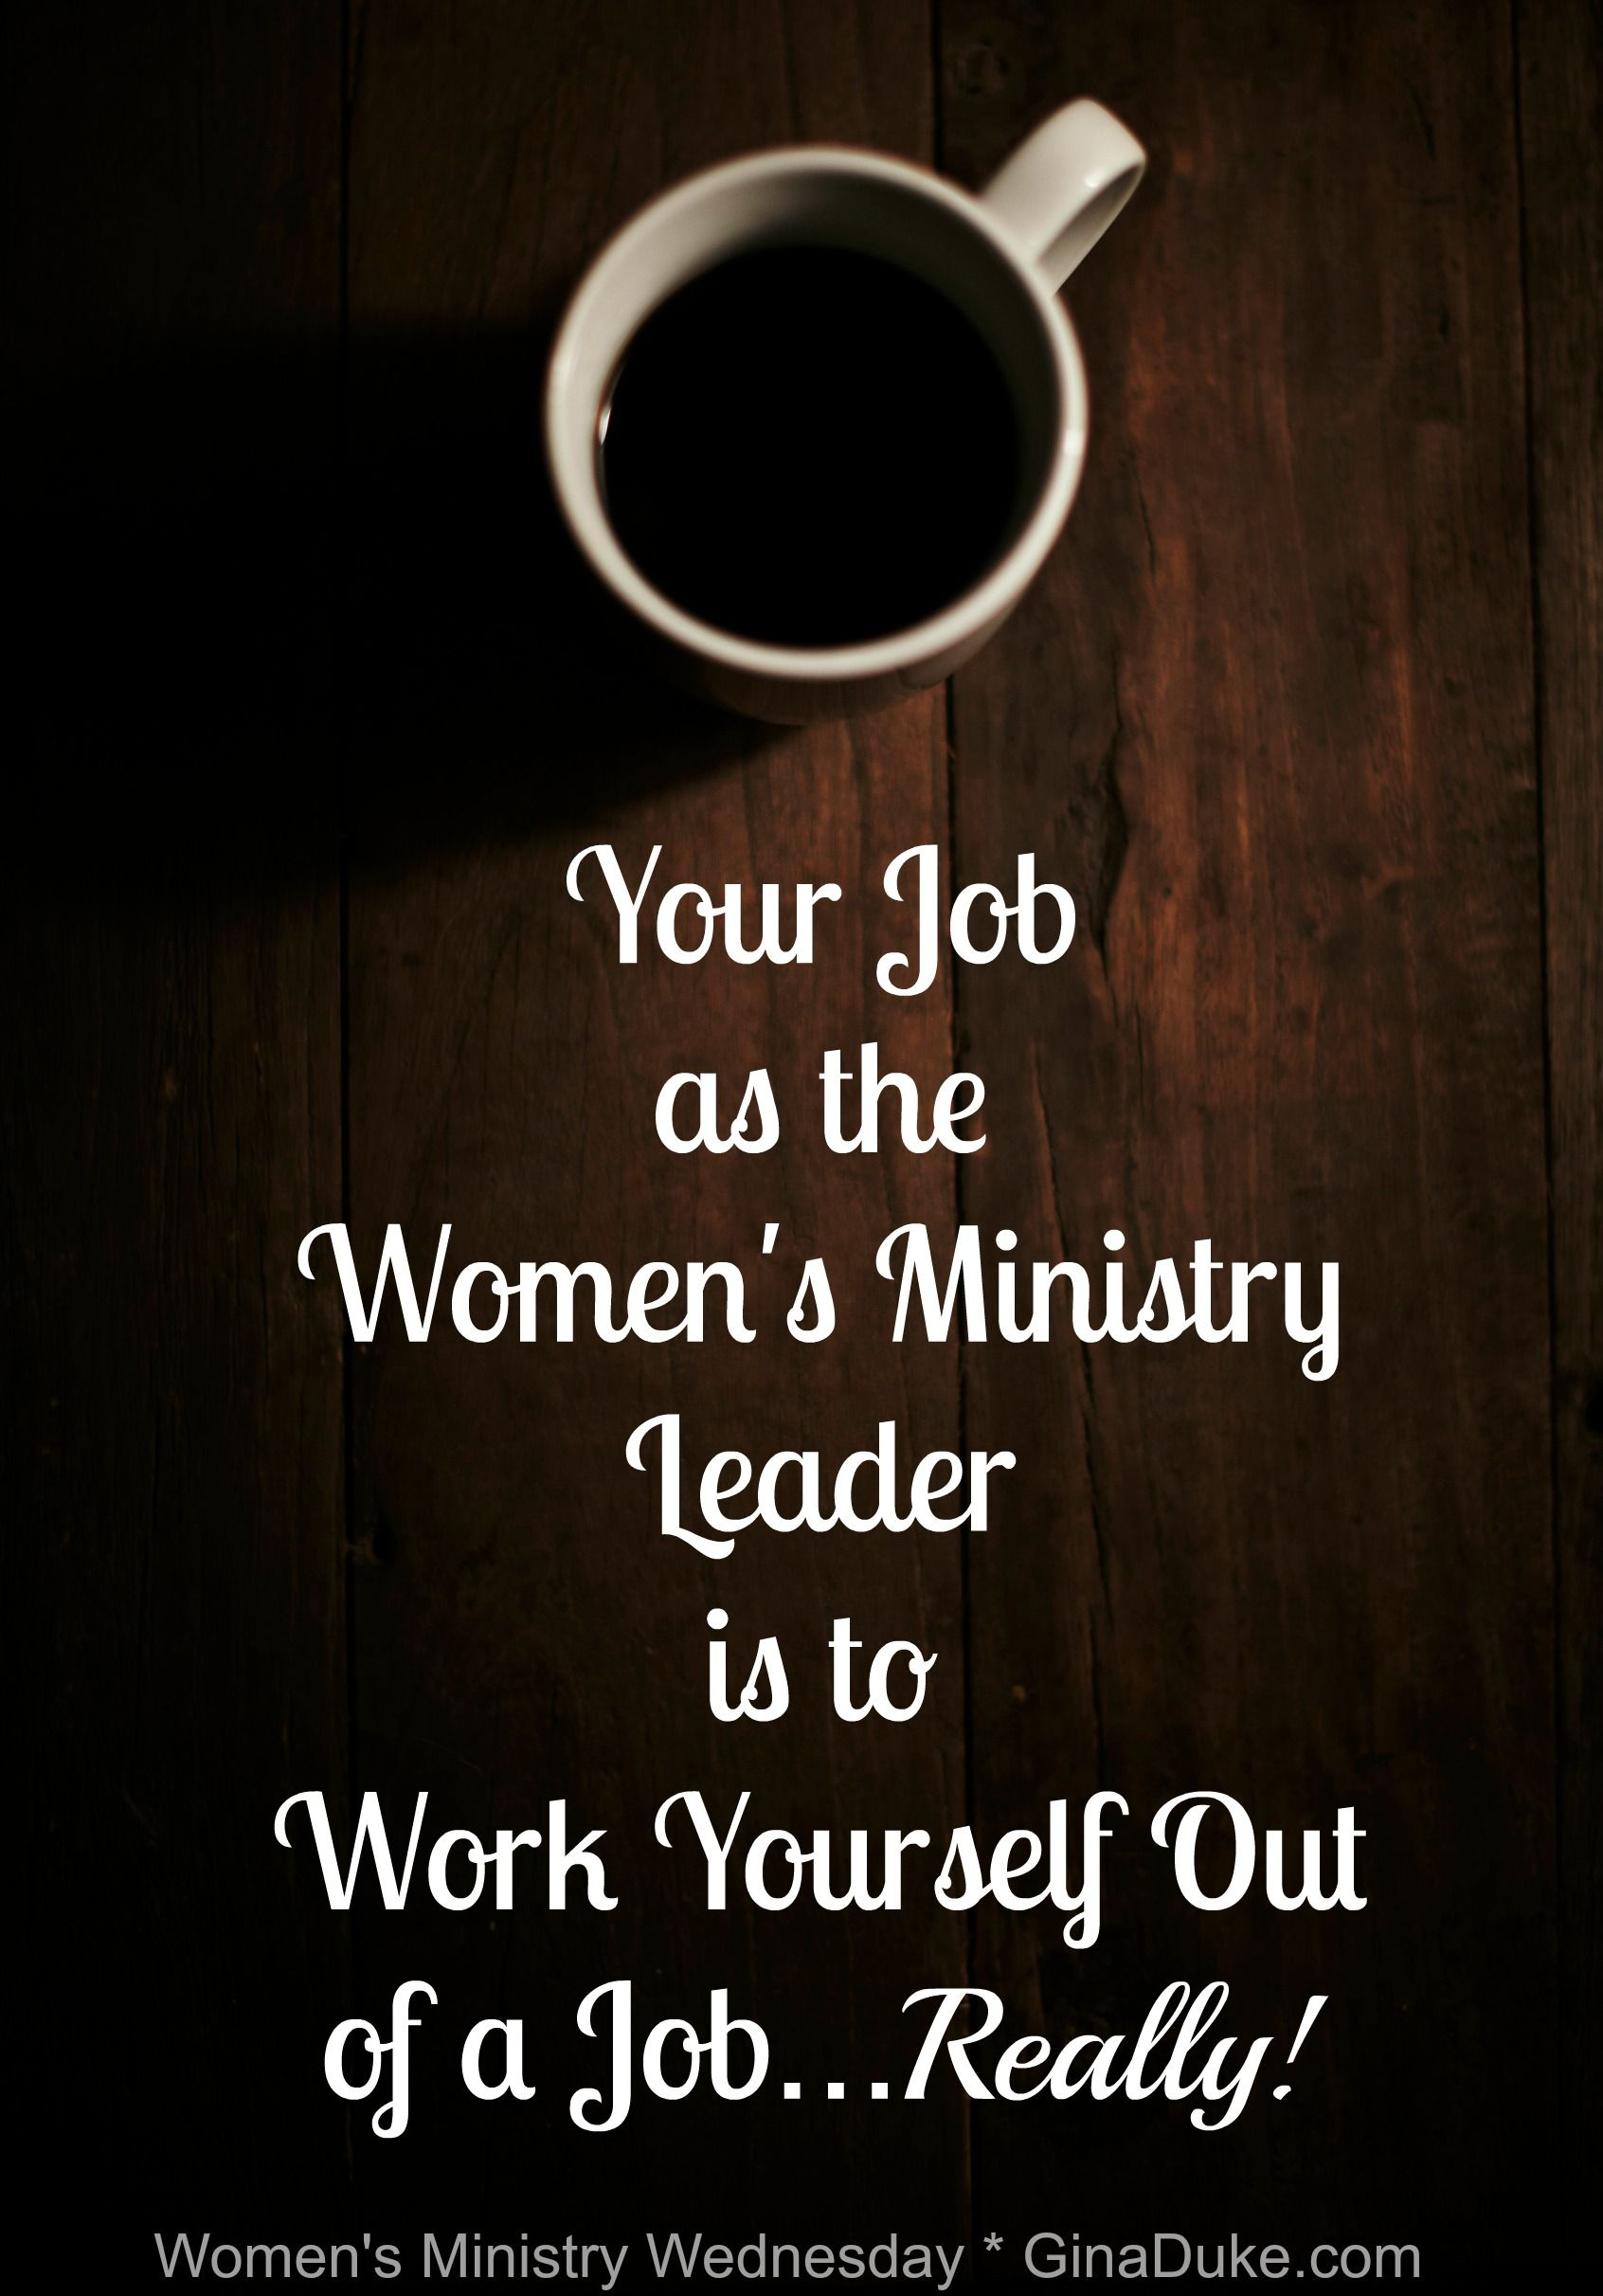 Our goal is not to get women engaged in women's ministry ...